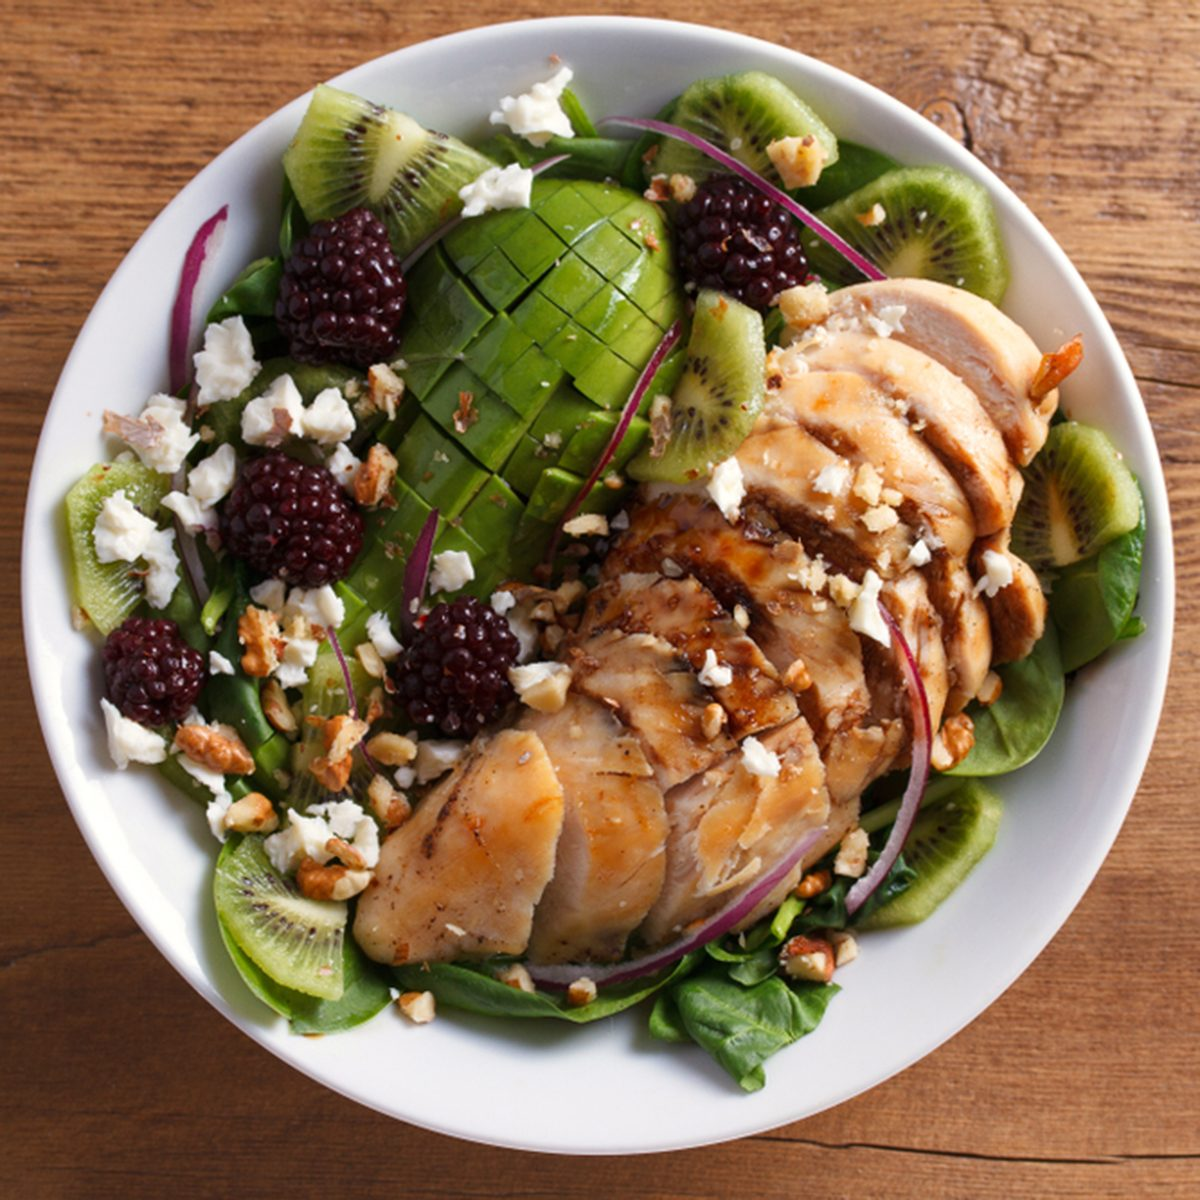 Kiwi blackberry balsamic chicken salad with avocado, spinach, feta cheese and walnuts.